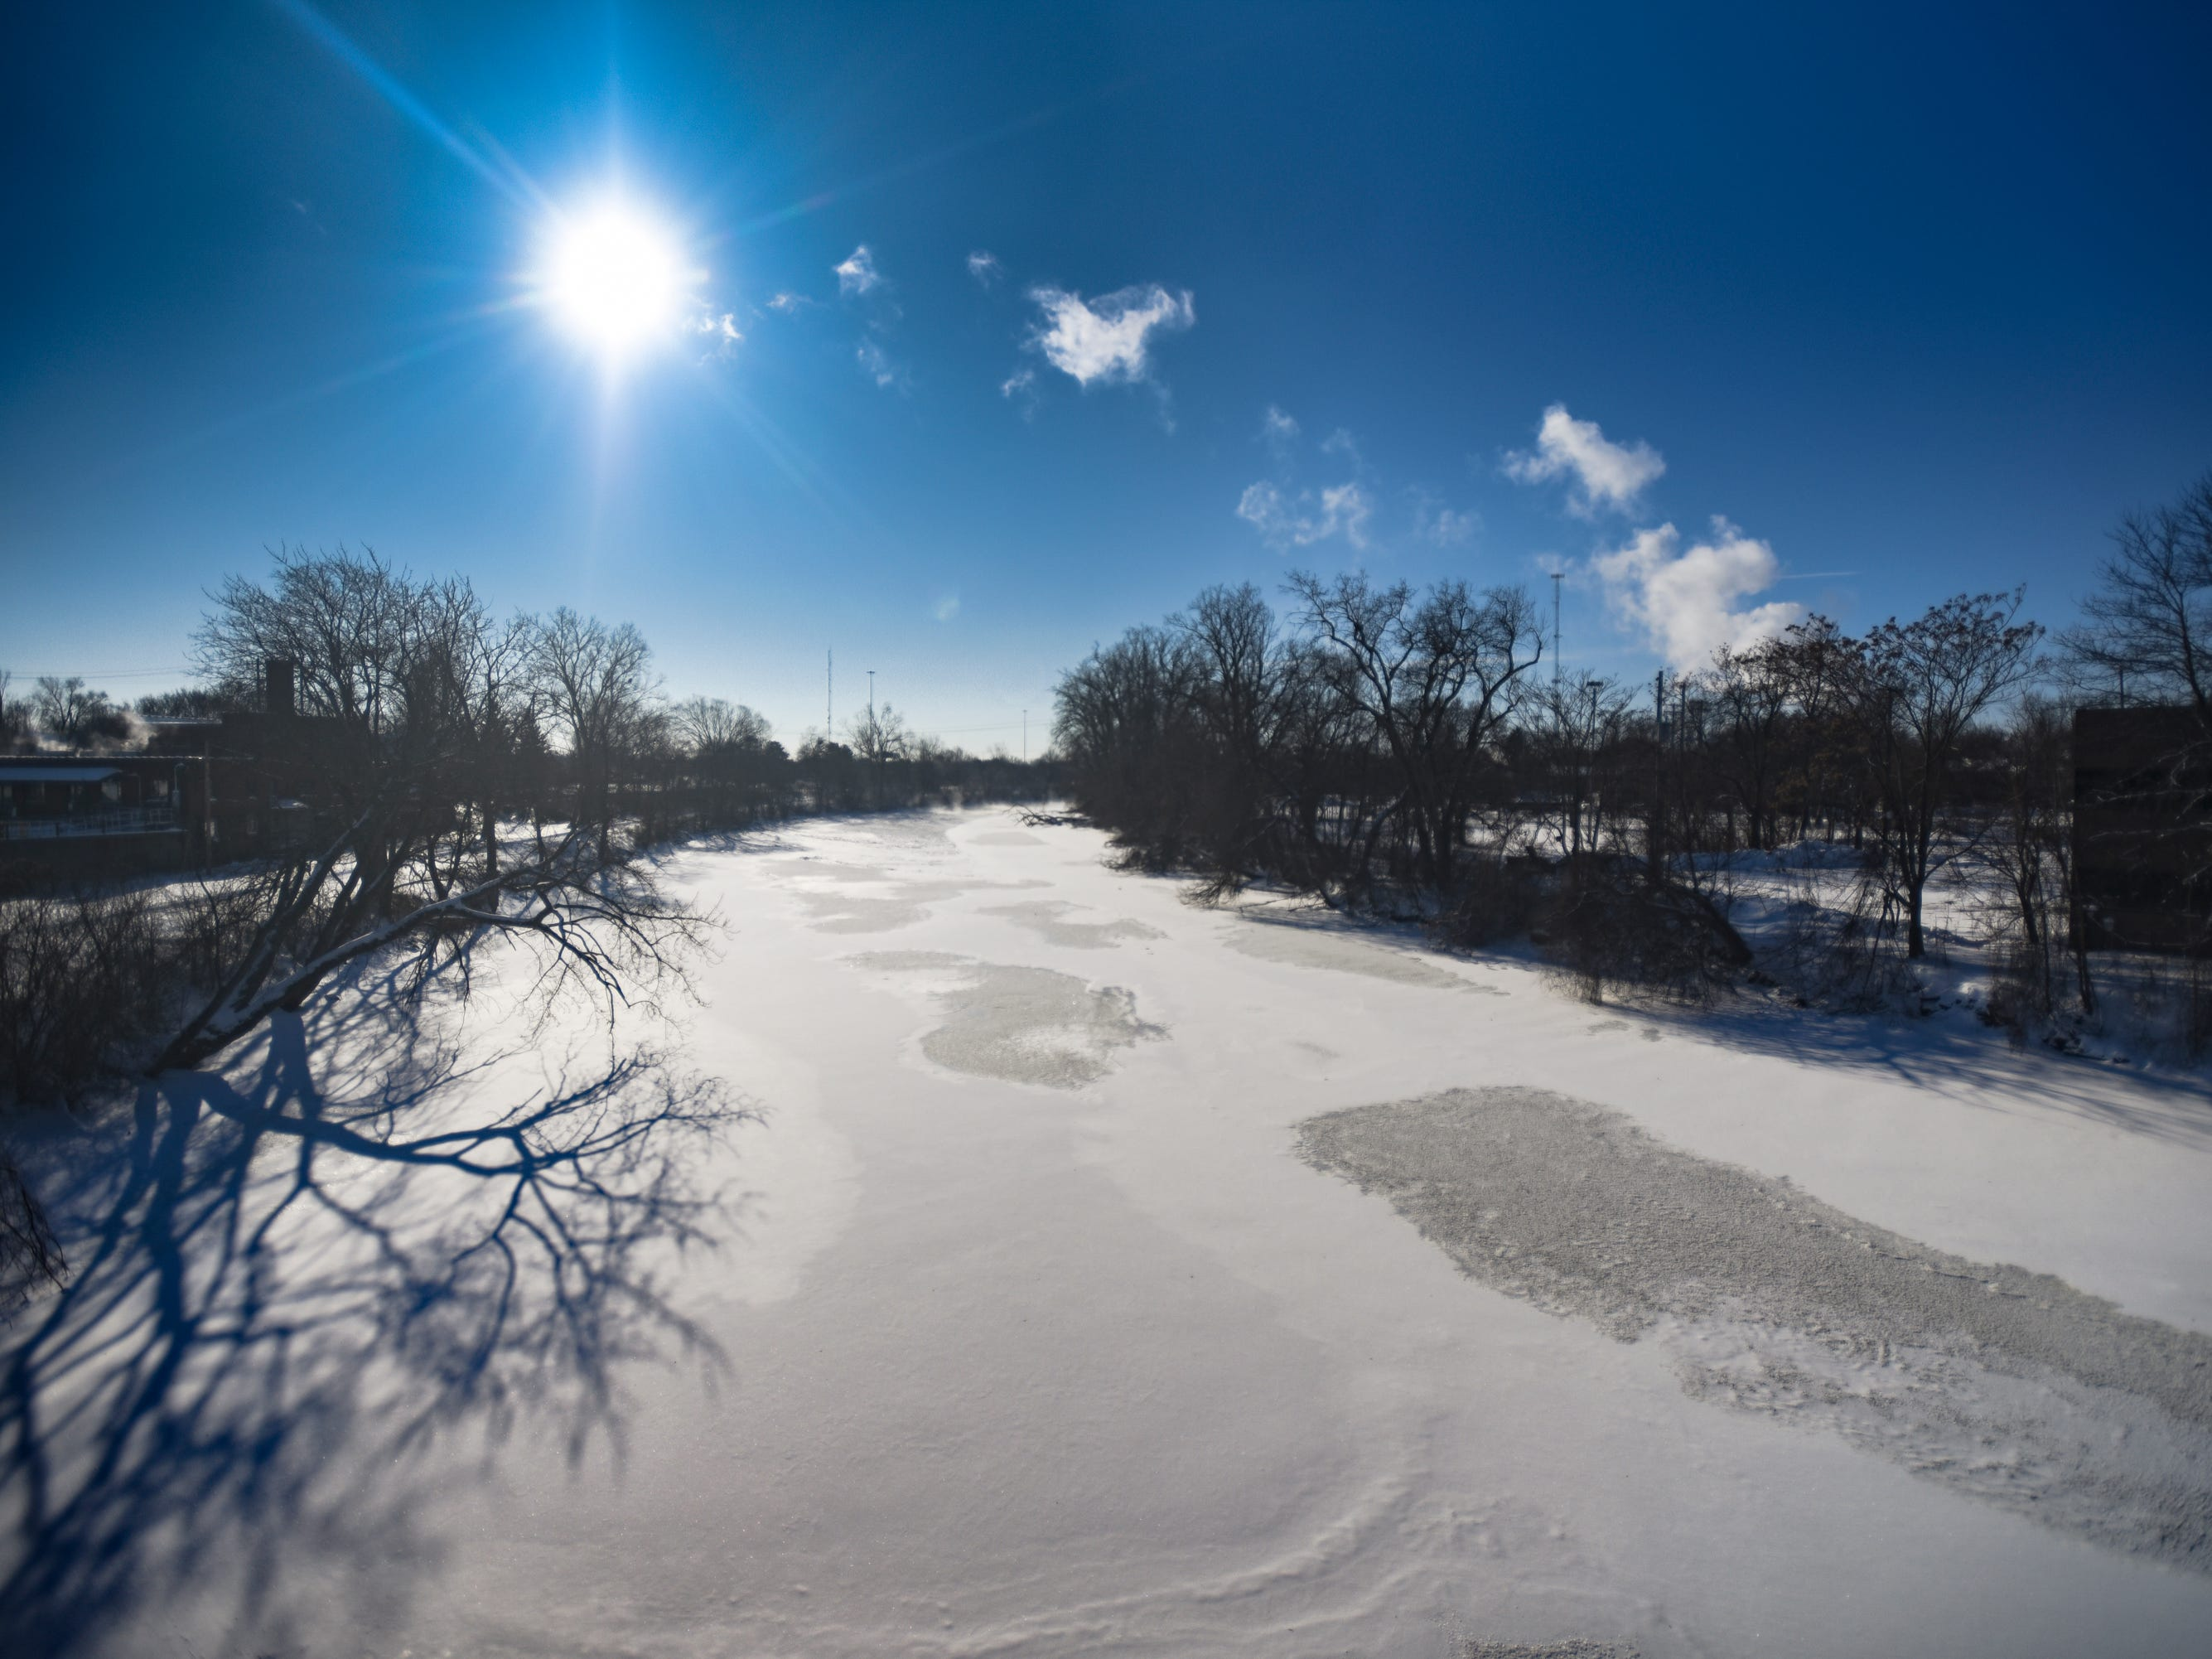 The Grand River from the Kalamazoo St. Bridge facing south, Thursday, Jan. 31, 2019.